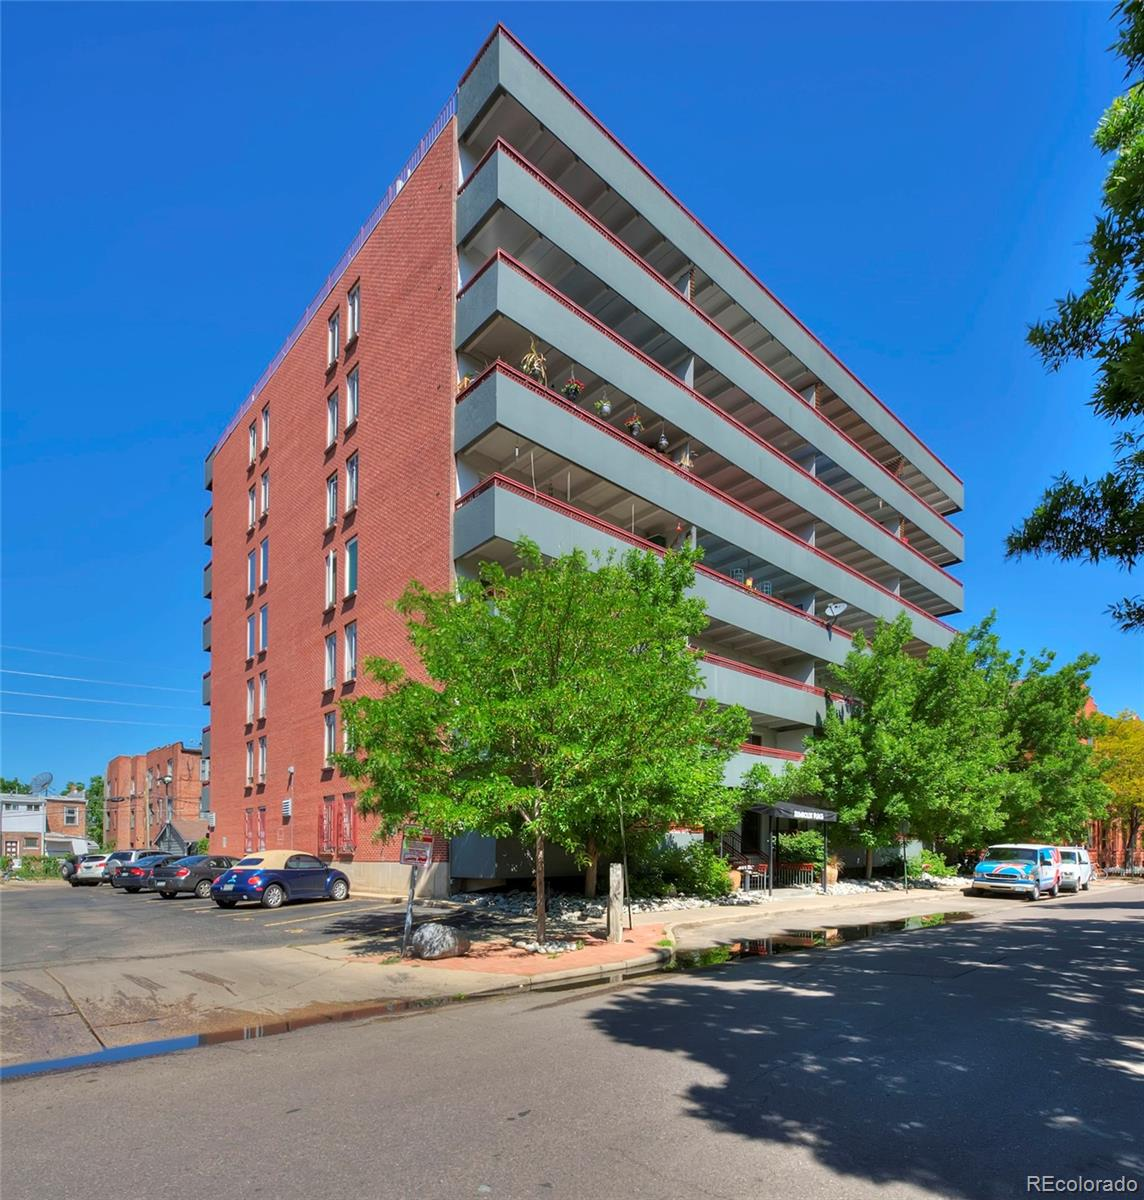 MLS# 8662083 - 1 - 1441 N Humboldt Street #407, Denver, CO 80218